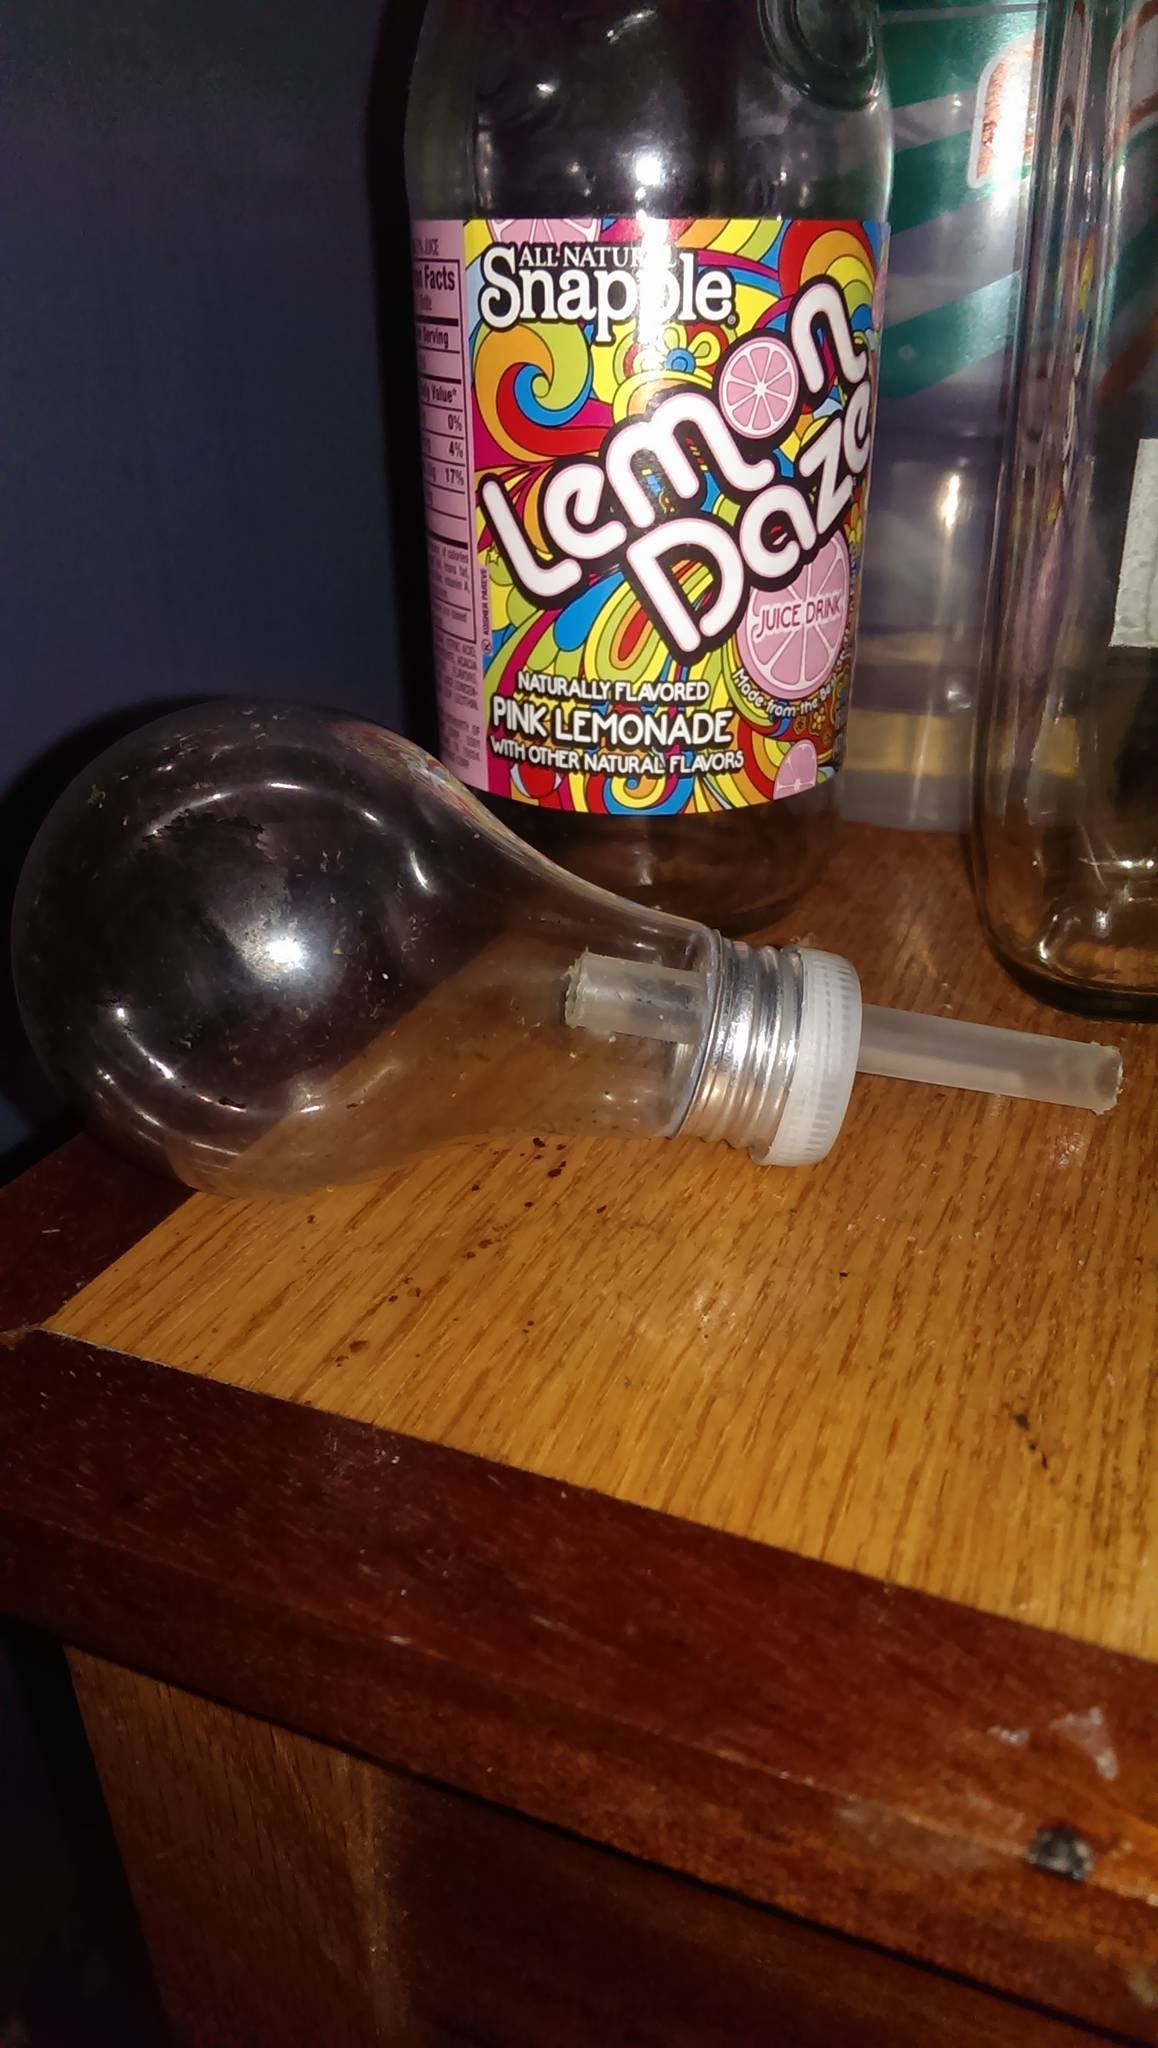 Light Bulb Vapes r great for vaping DMT, weed, and other